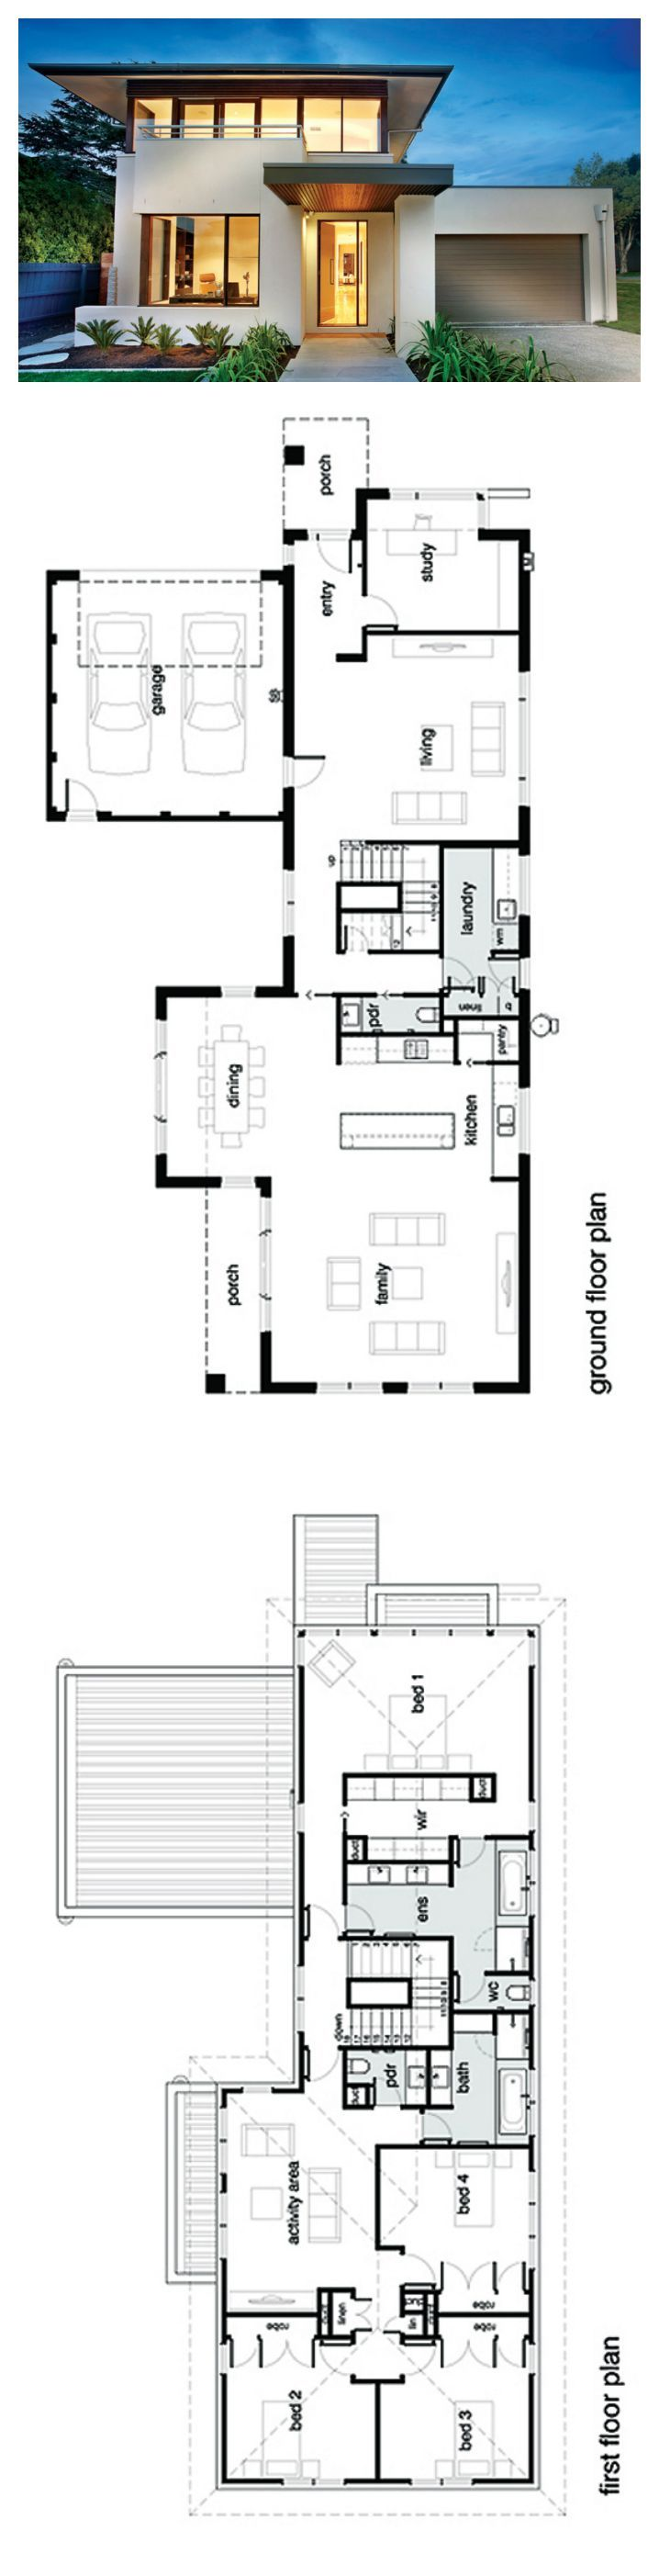 Best 25 modern house plans ideas on pinterest modern for Two floor house blueprints